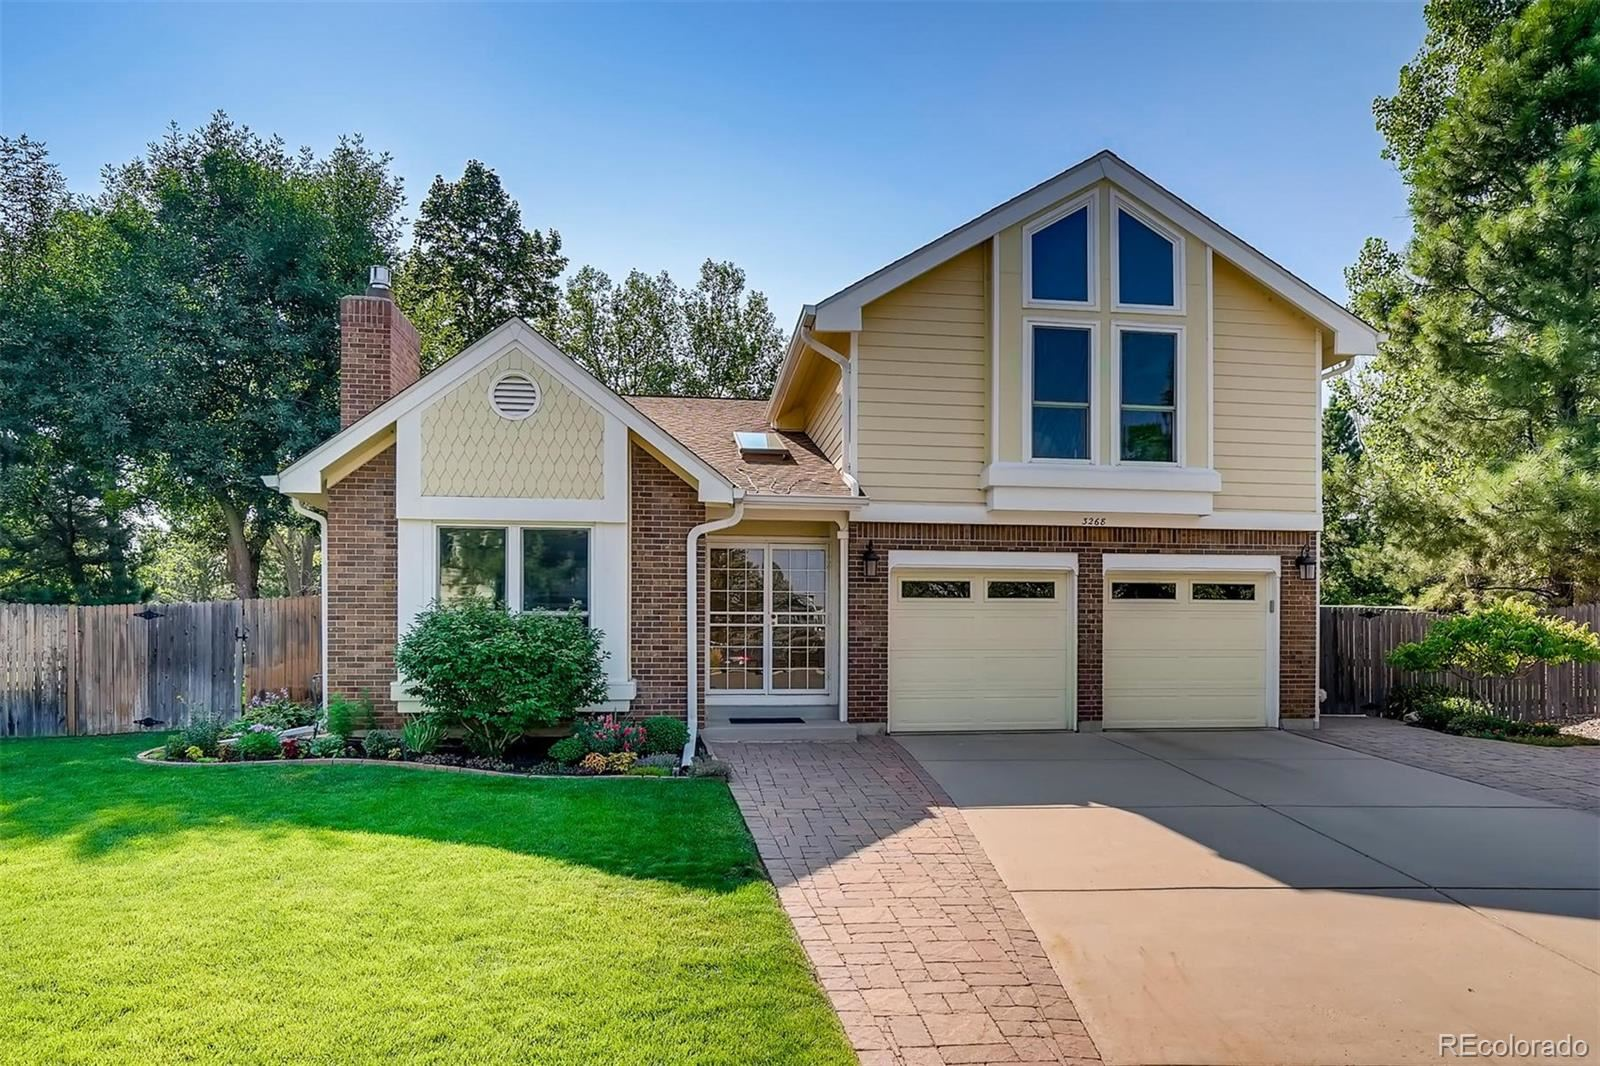 3268 W 101st Circle, Westminster, CO 80031 - #: 4210422